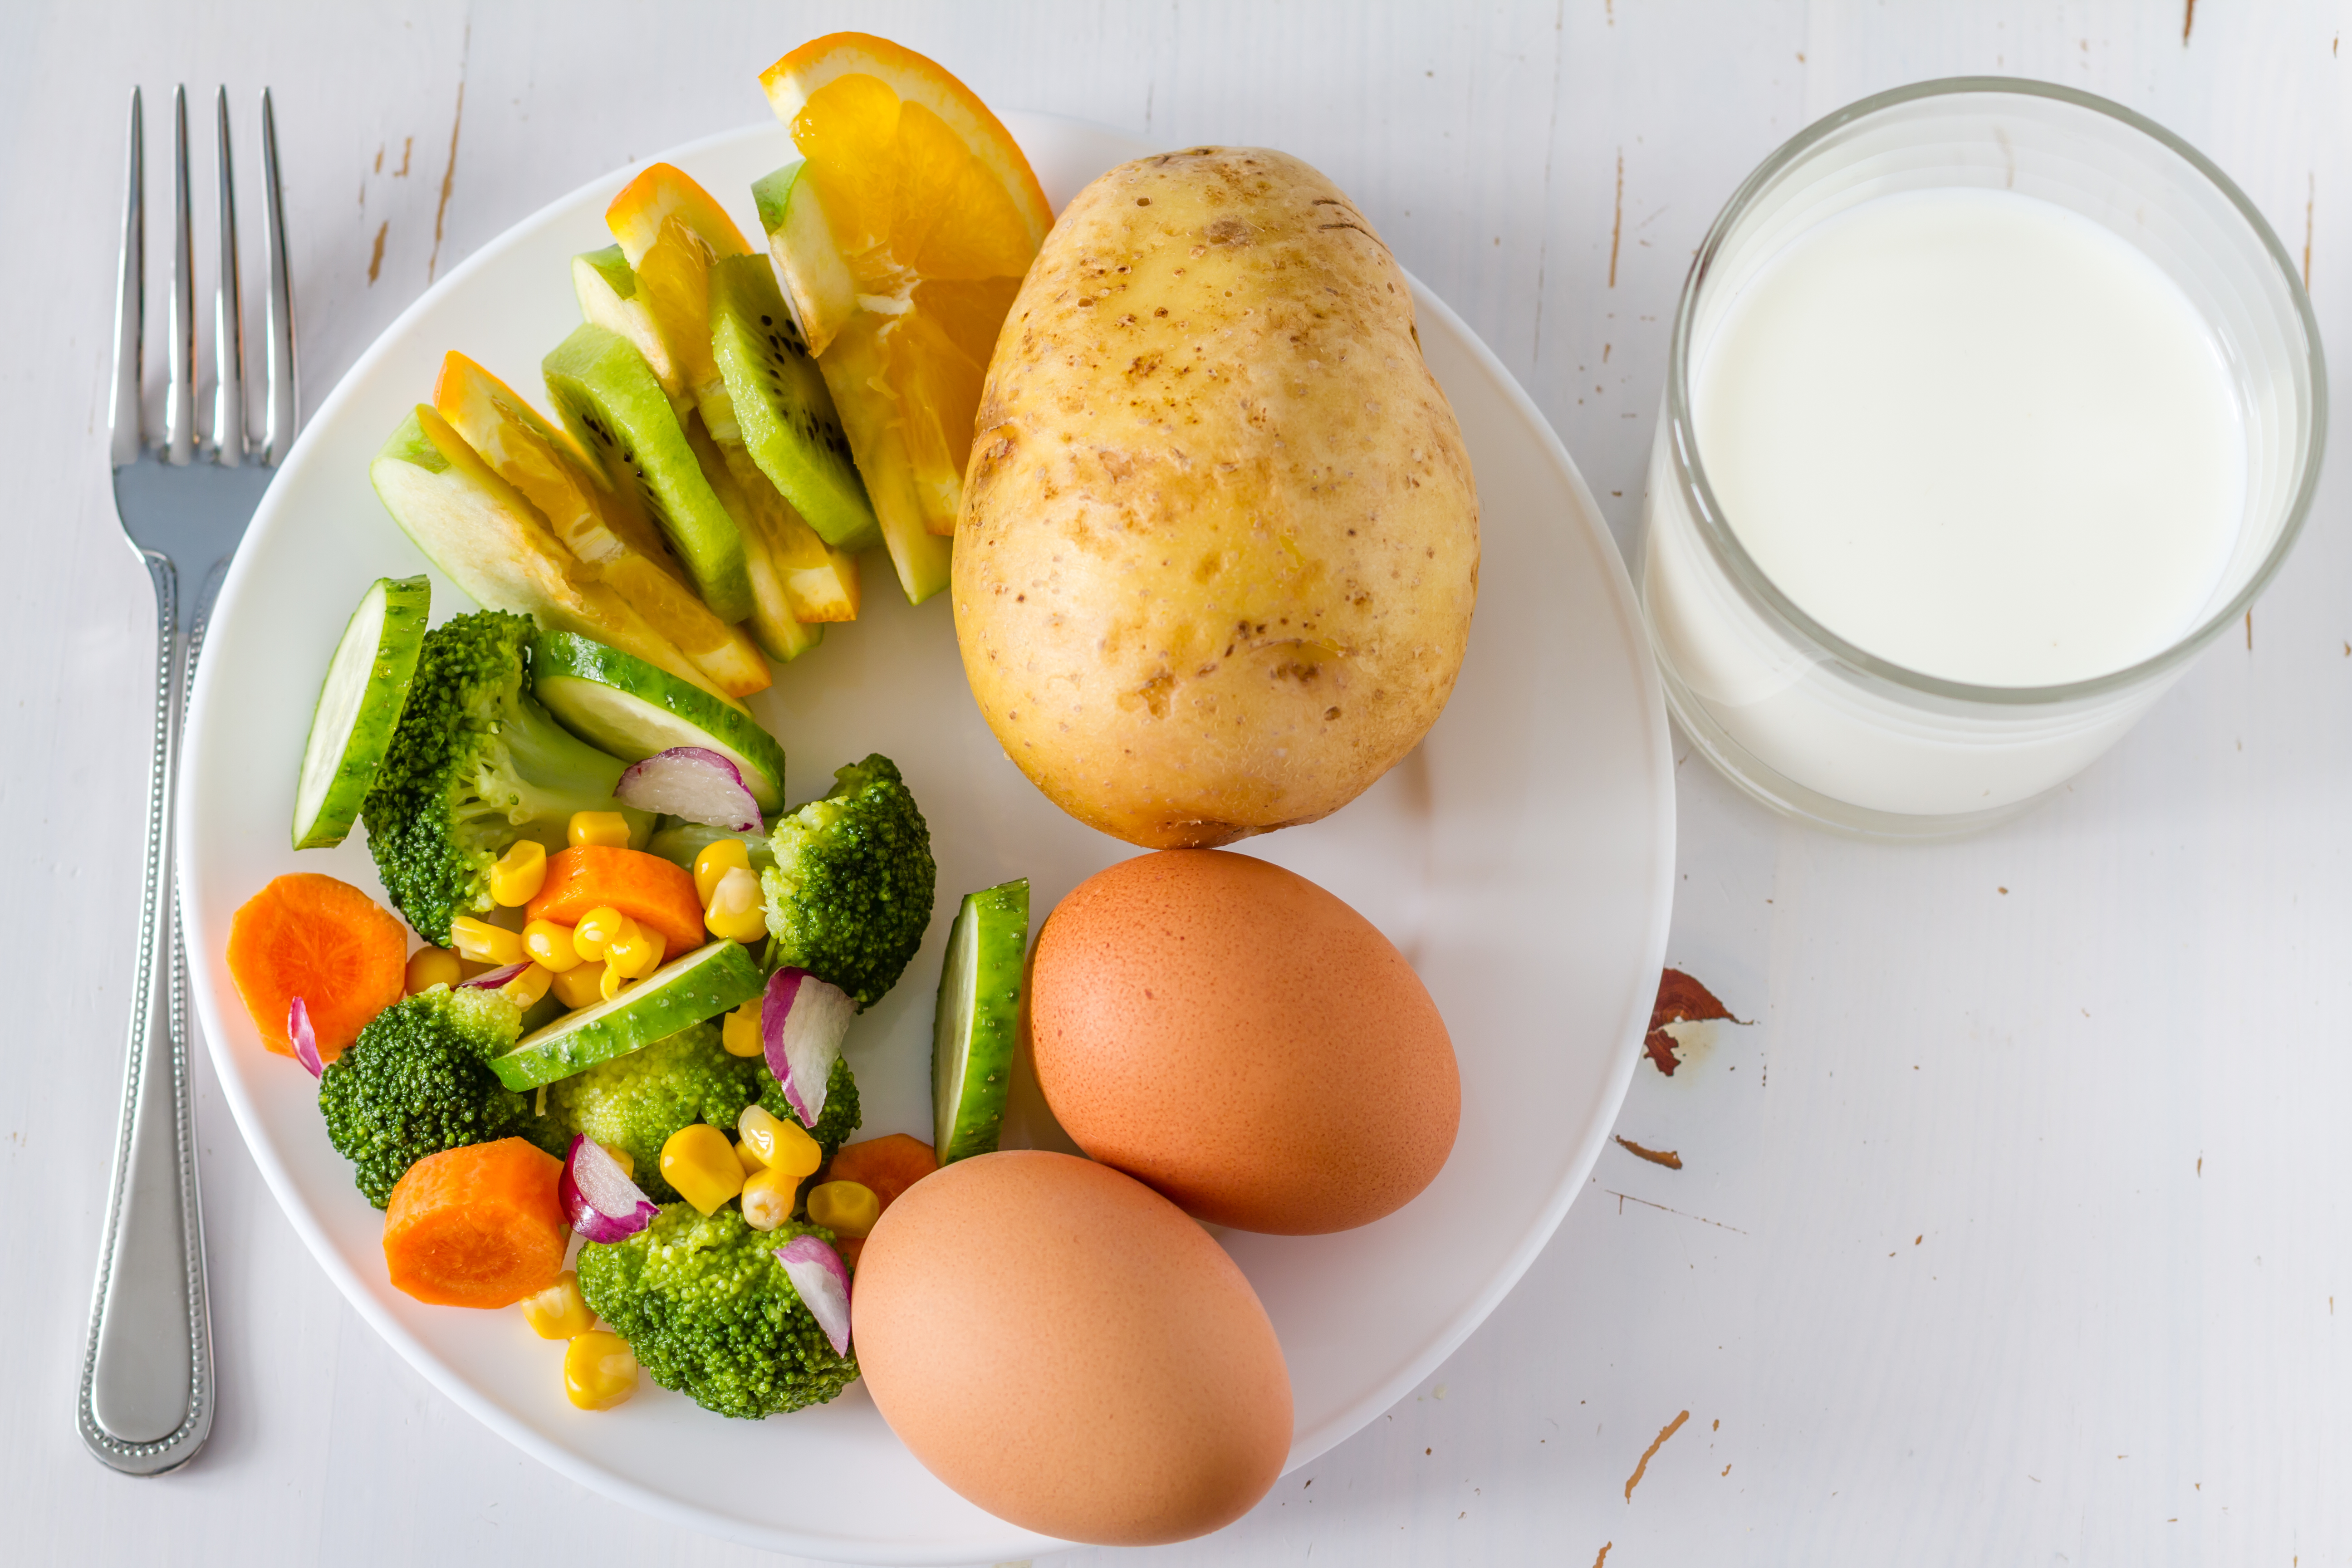 A List of the Major Nutrients Provided by Each Food Group